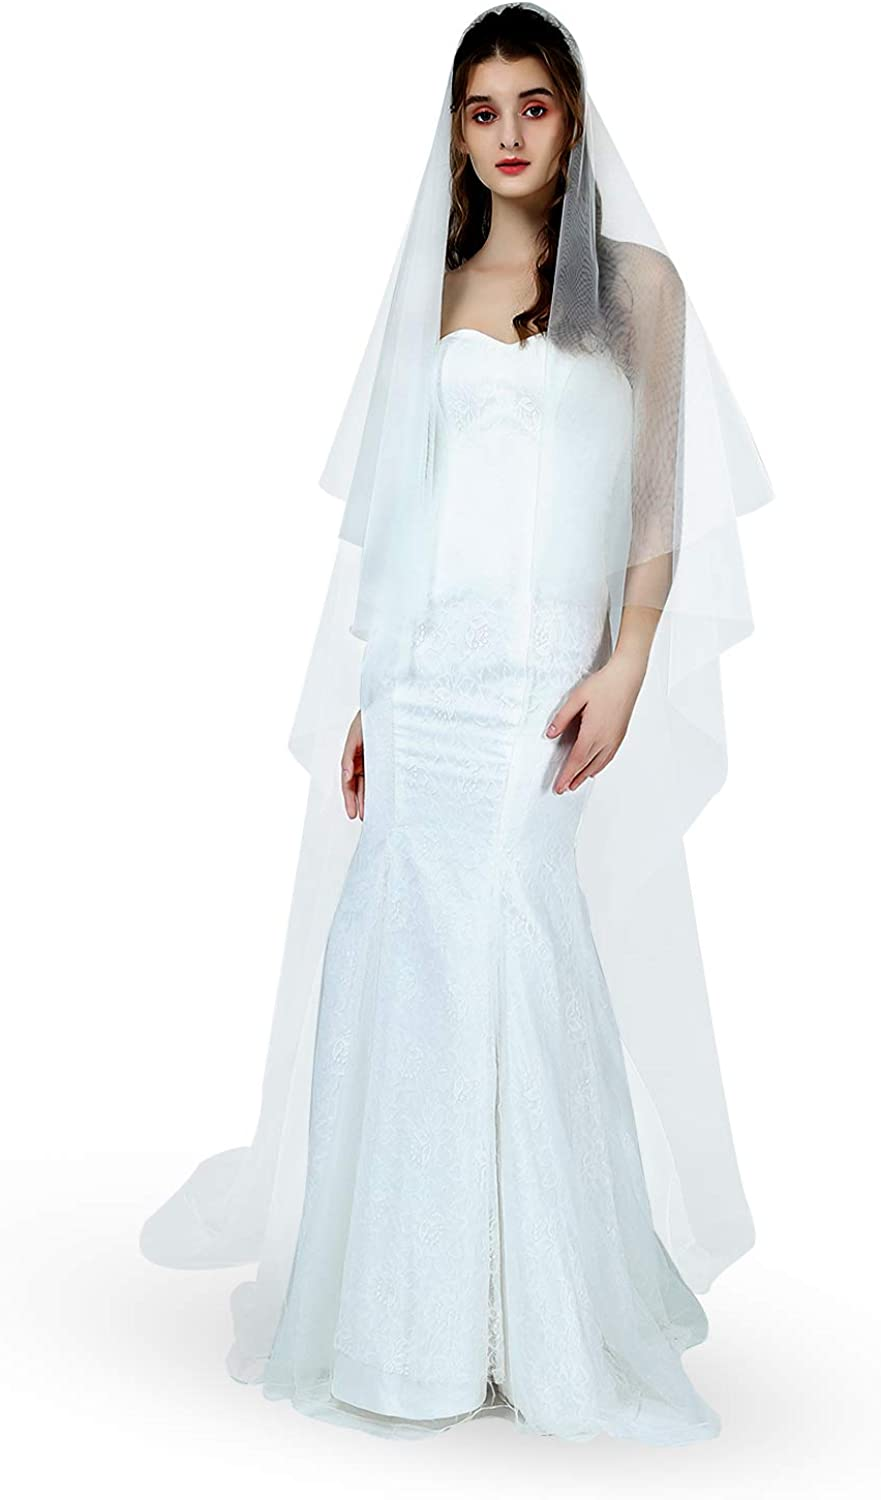 Bridal Wedding Veil 2 Tier For Women Cut Edge Knee Chapel Length With Comb Ivory White